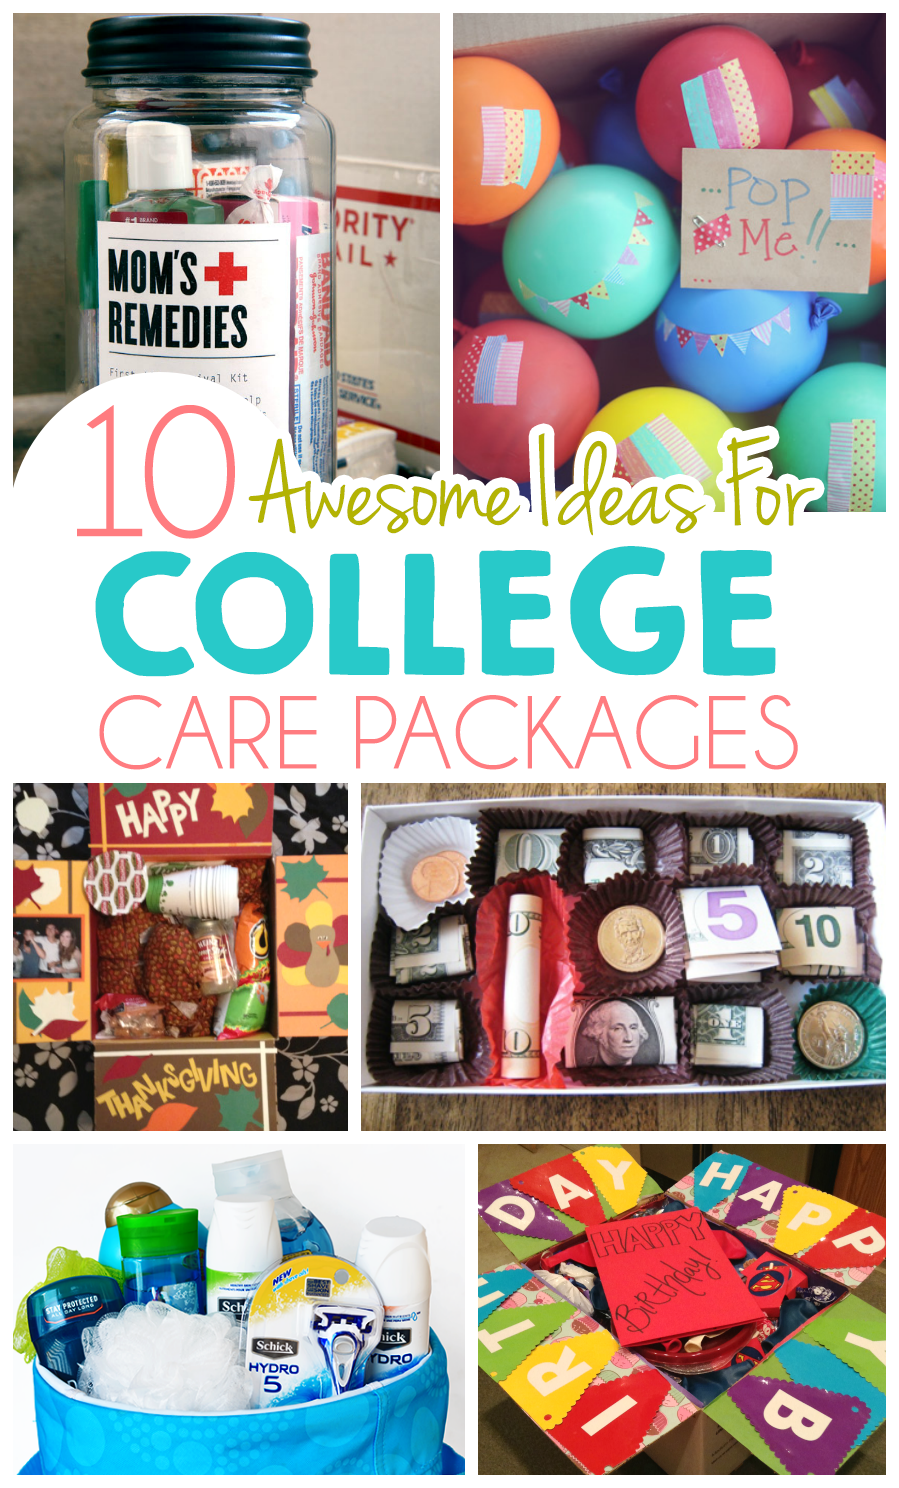 Christmas List Ideas For College Guys : Ideas for college care packages i heart arts n crafts